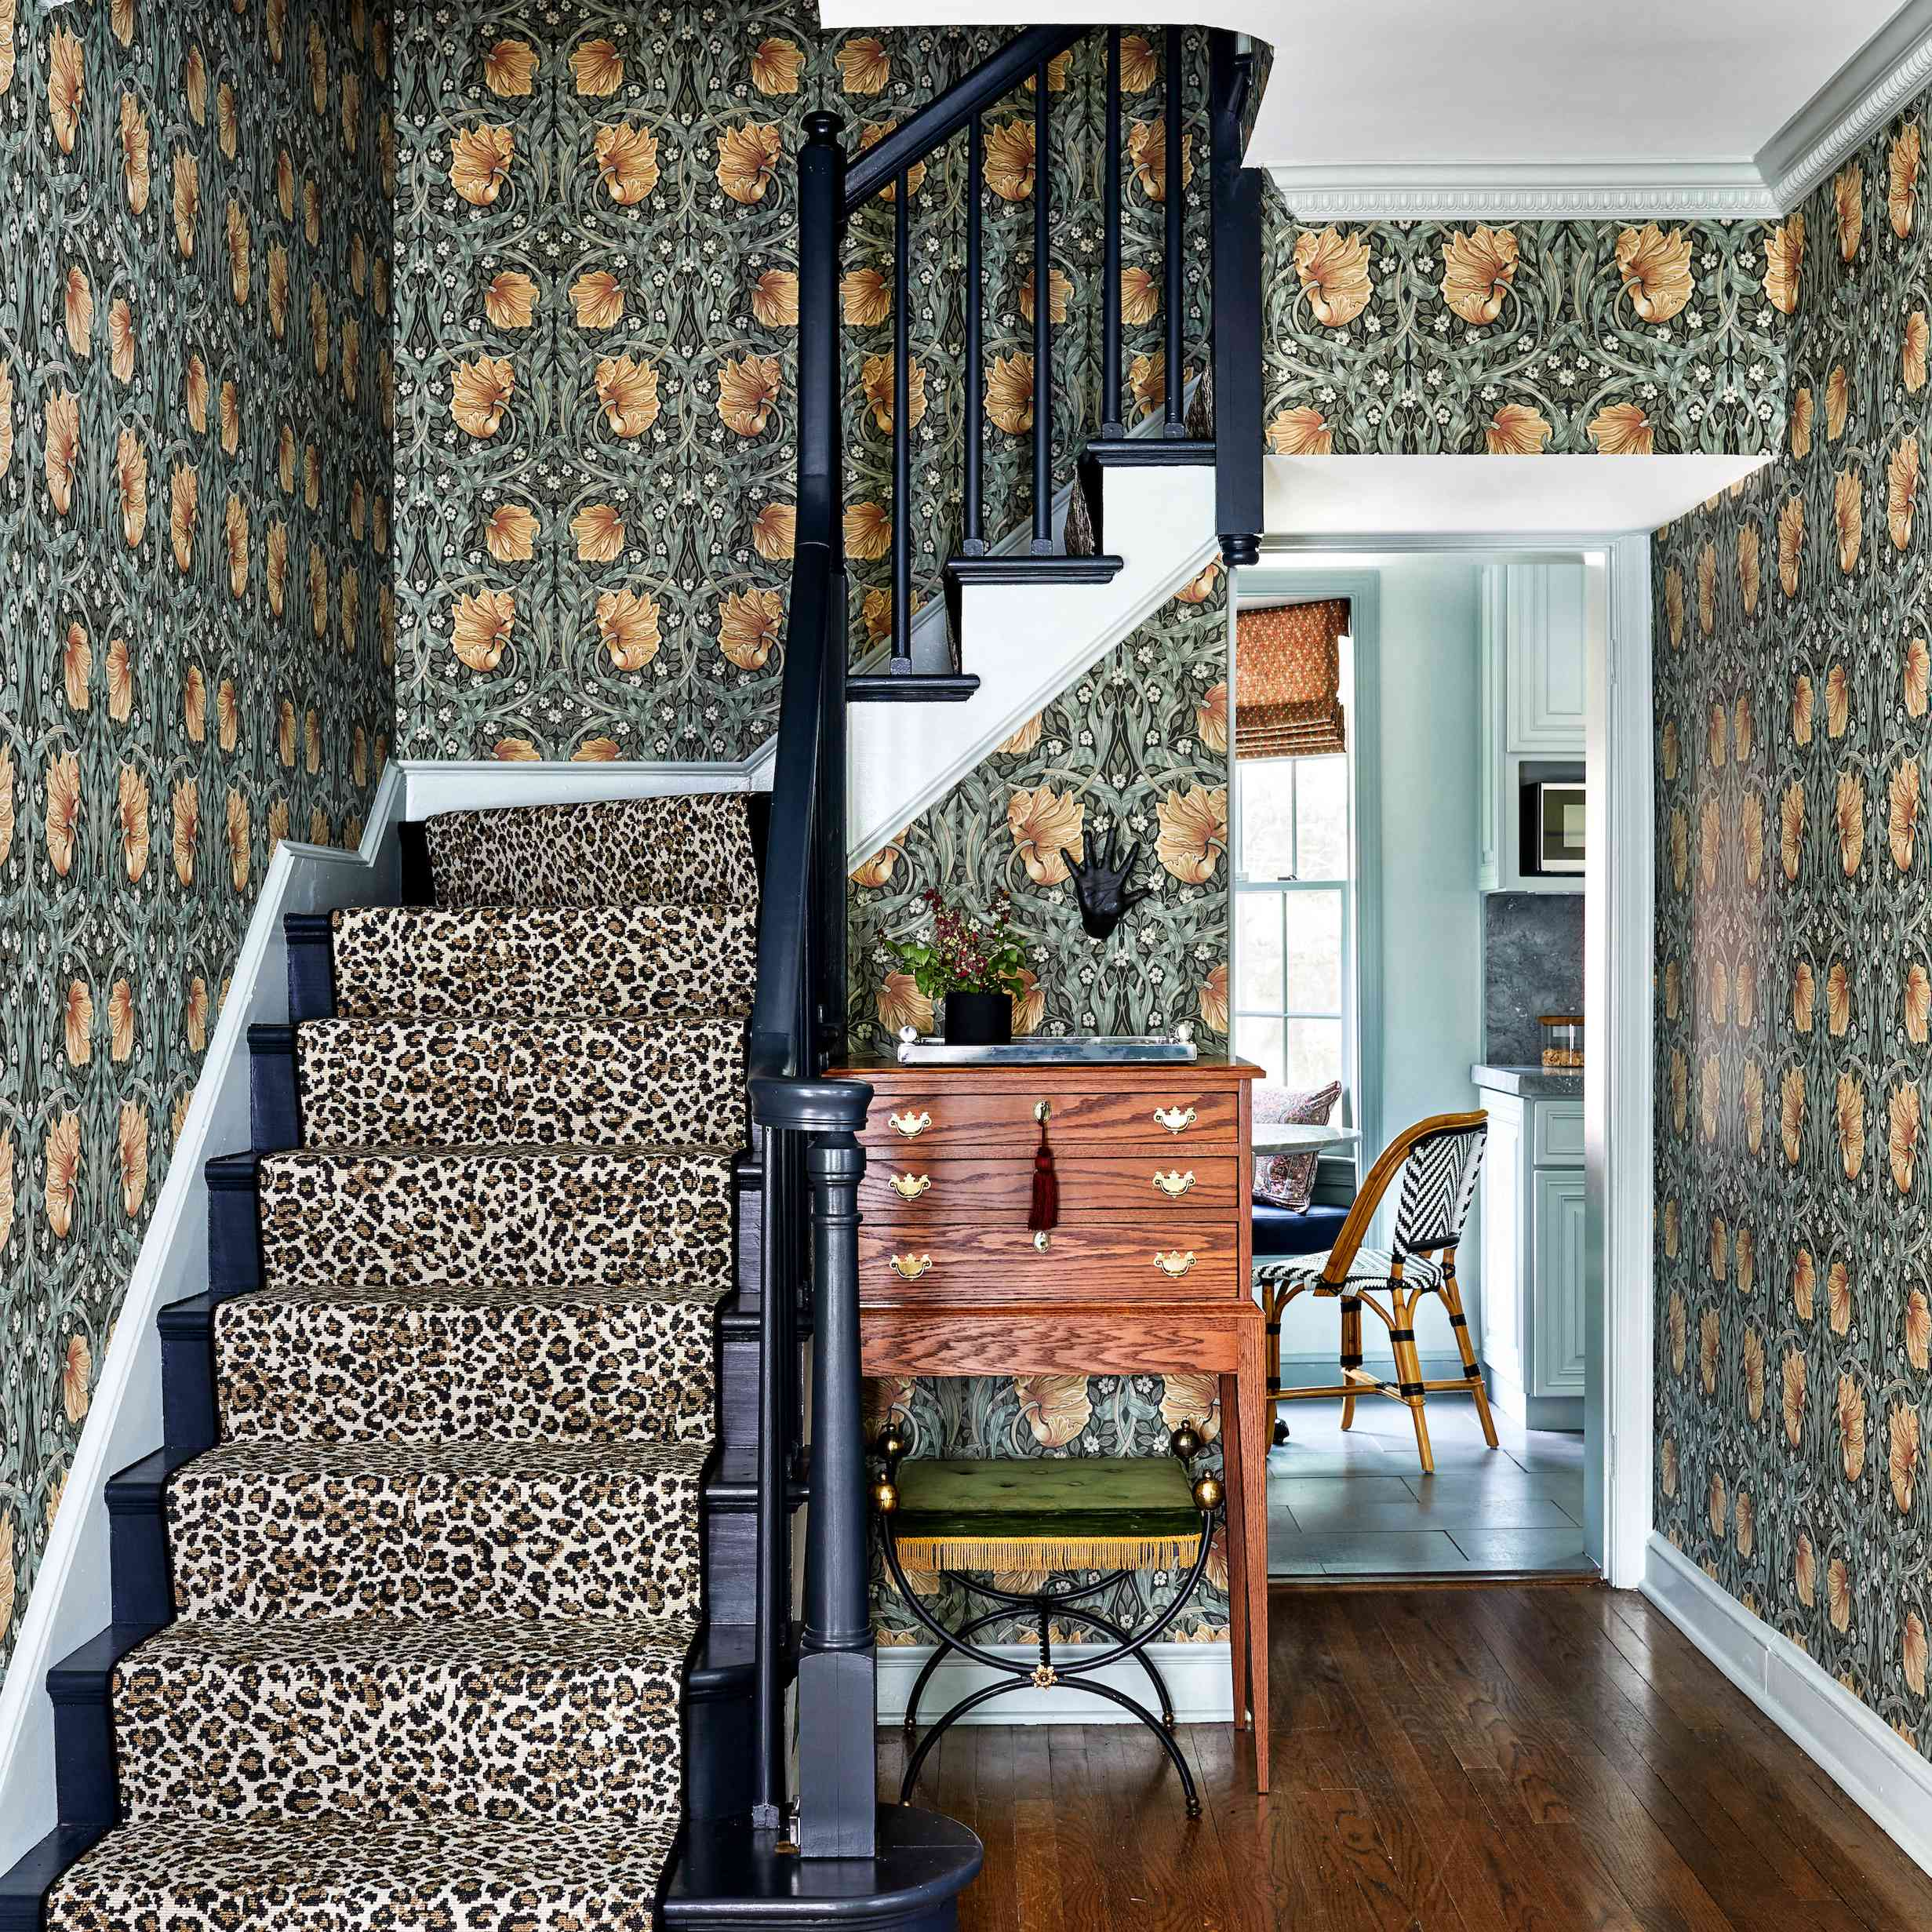 Entryway with animal print rug on staricase.